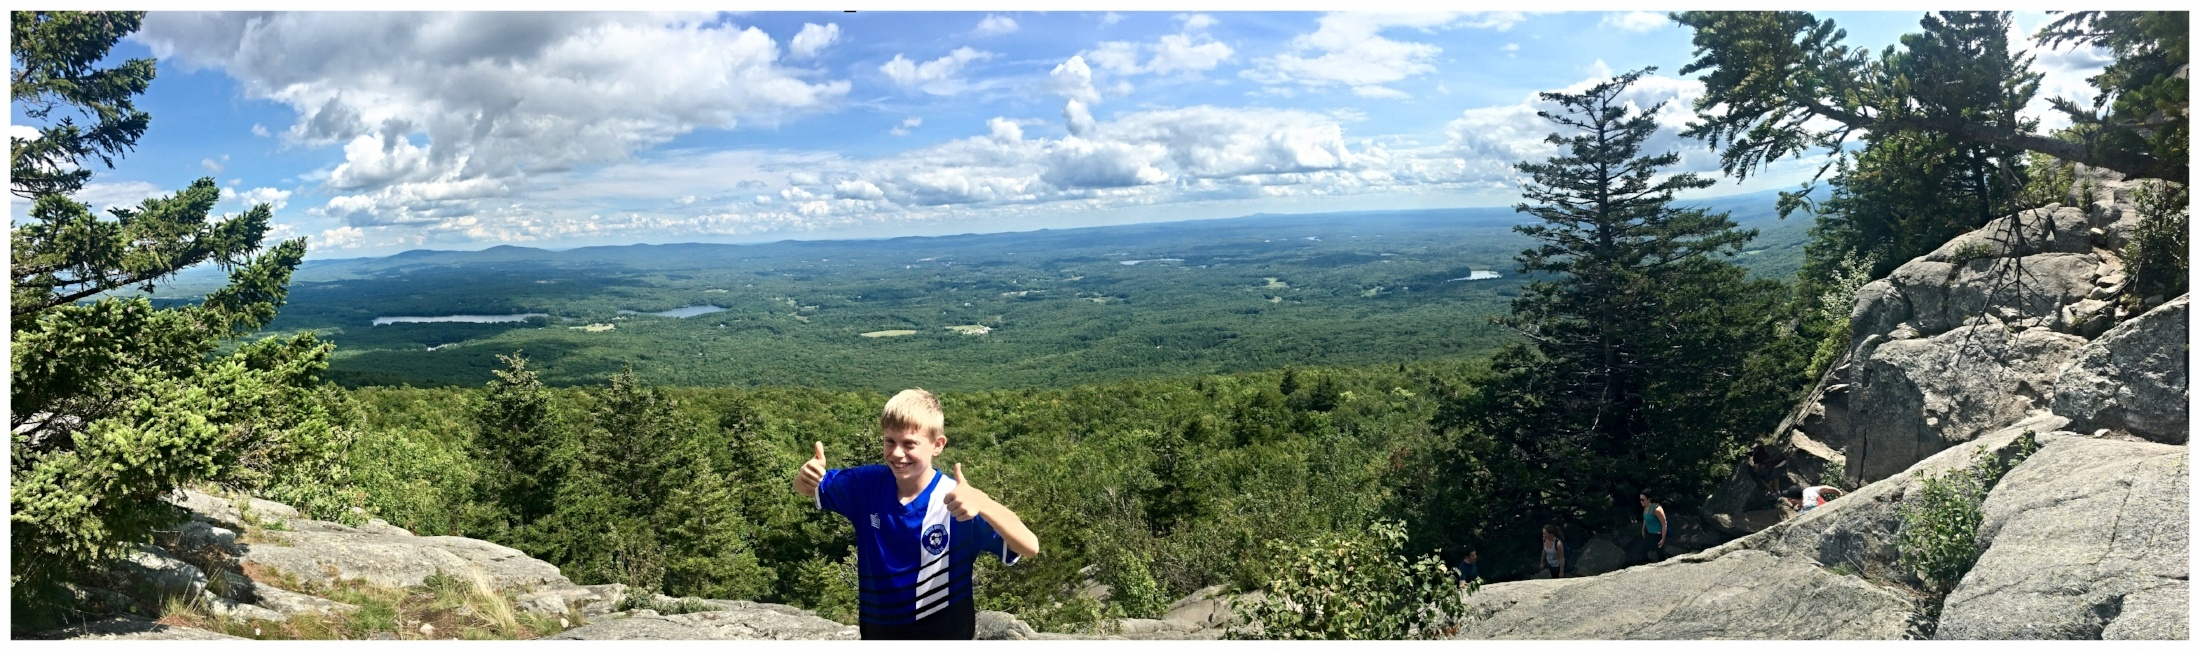 Hiking in Southern NH